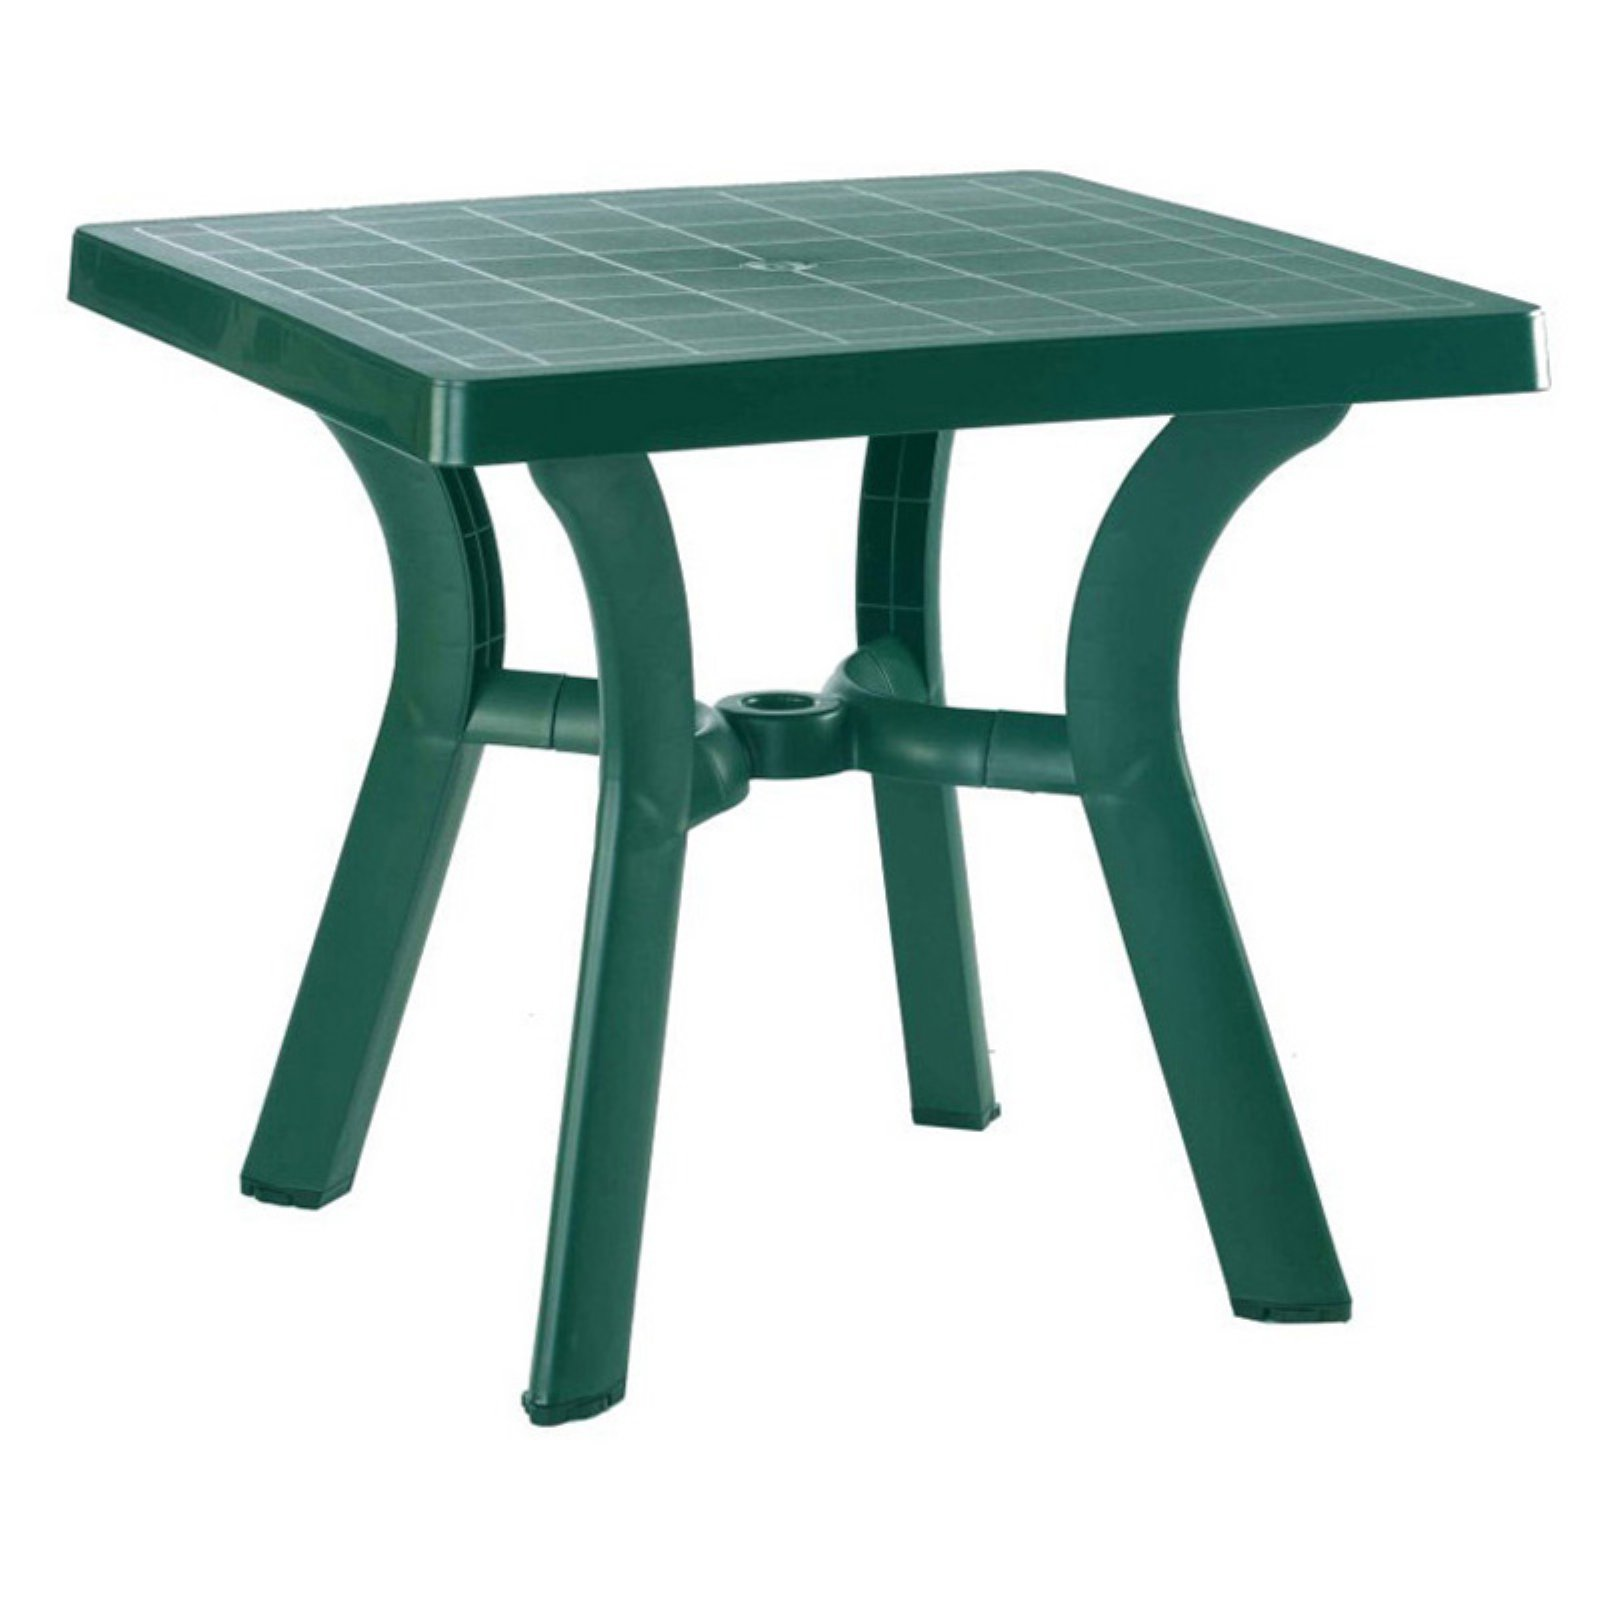 Compamia Viva Resin 31 in. Square Dining Table